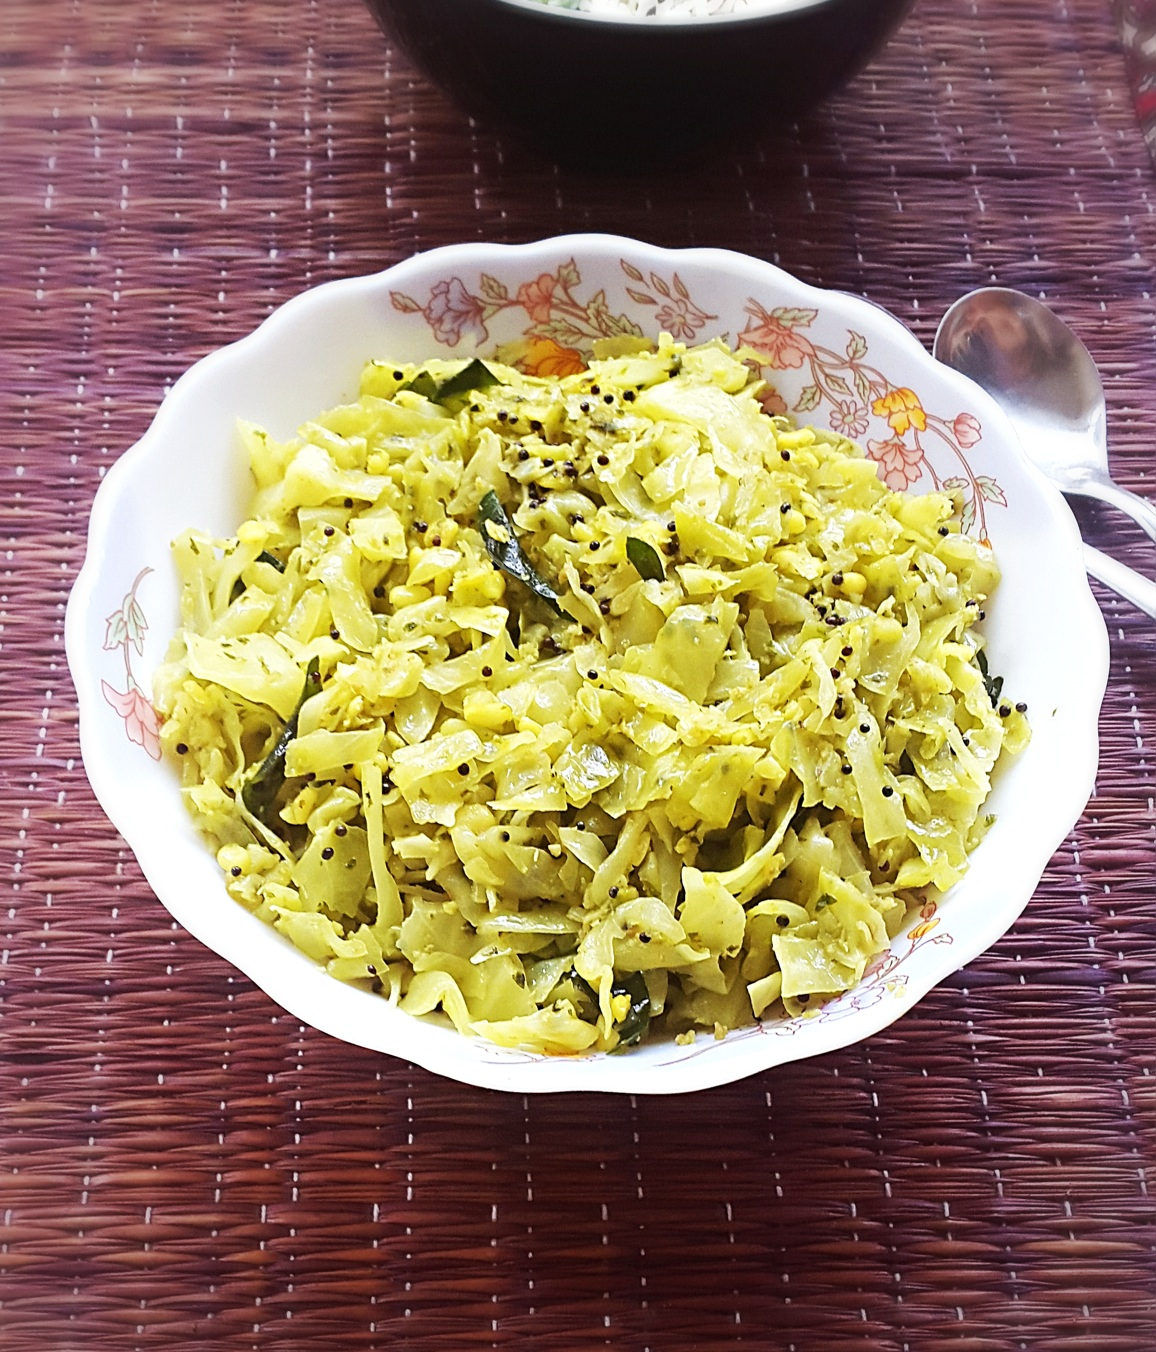 Cabbage With Coconut Stir Fry Recipe Cabbage Senagapappu Vepudu My Indian Taste